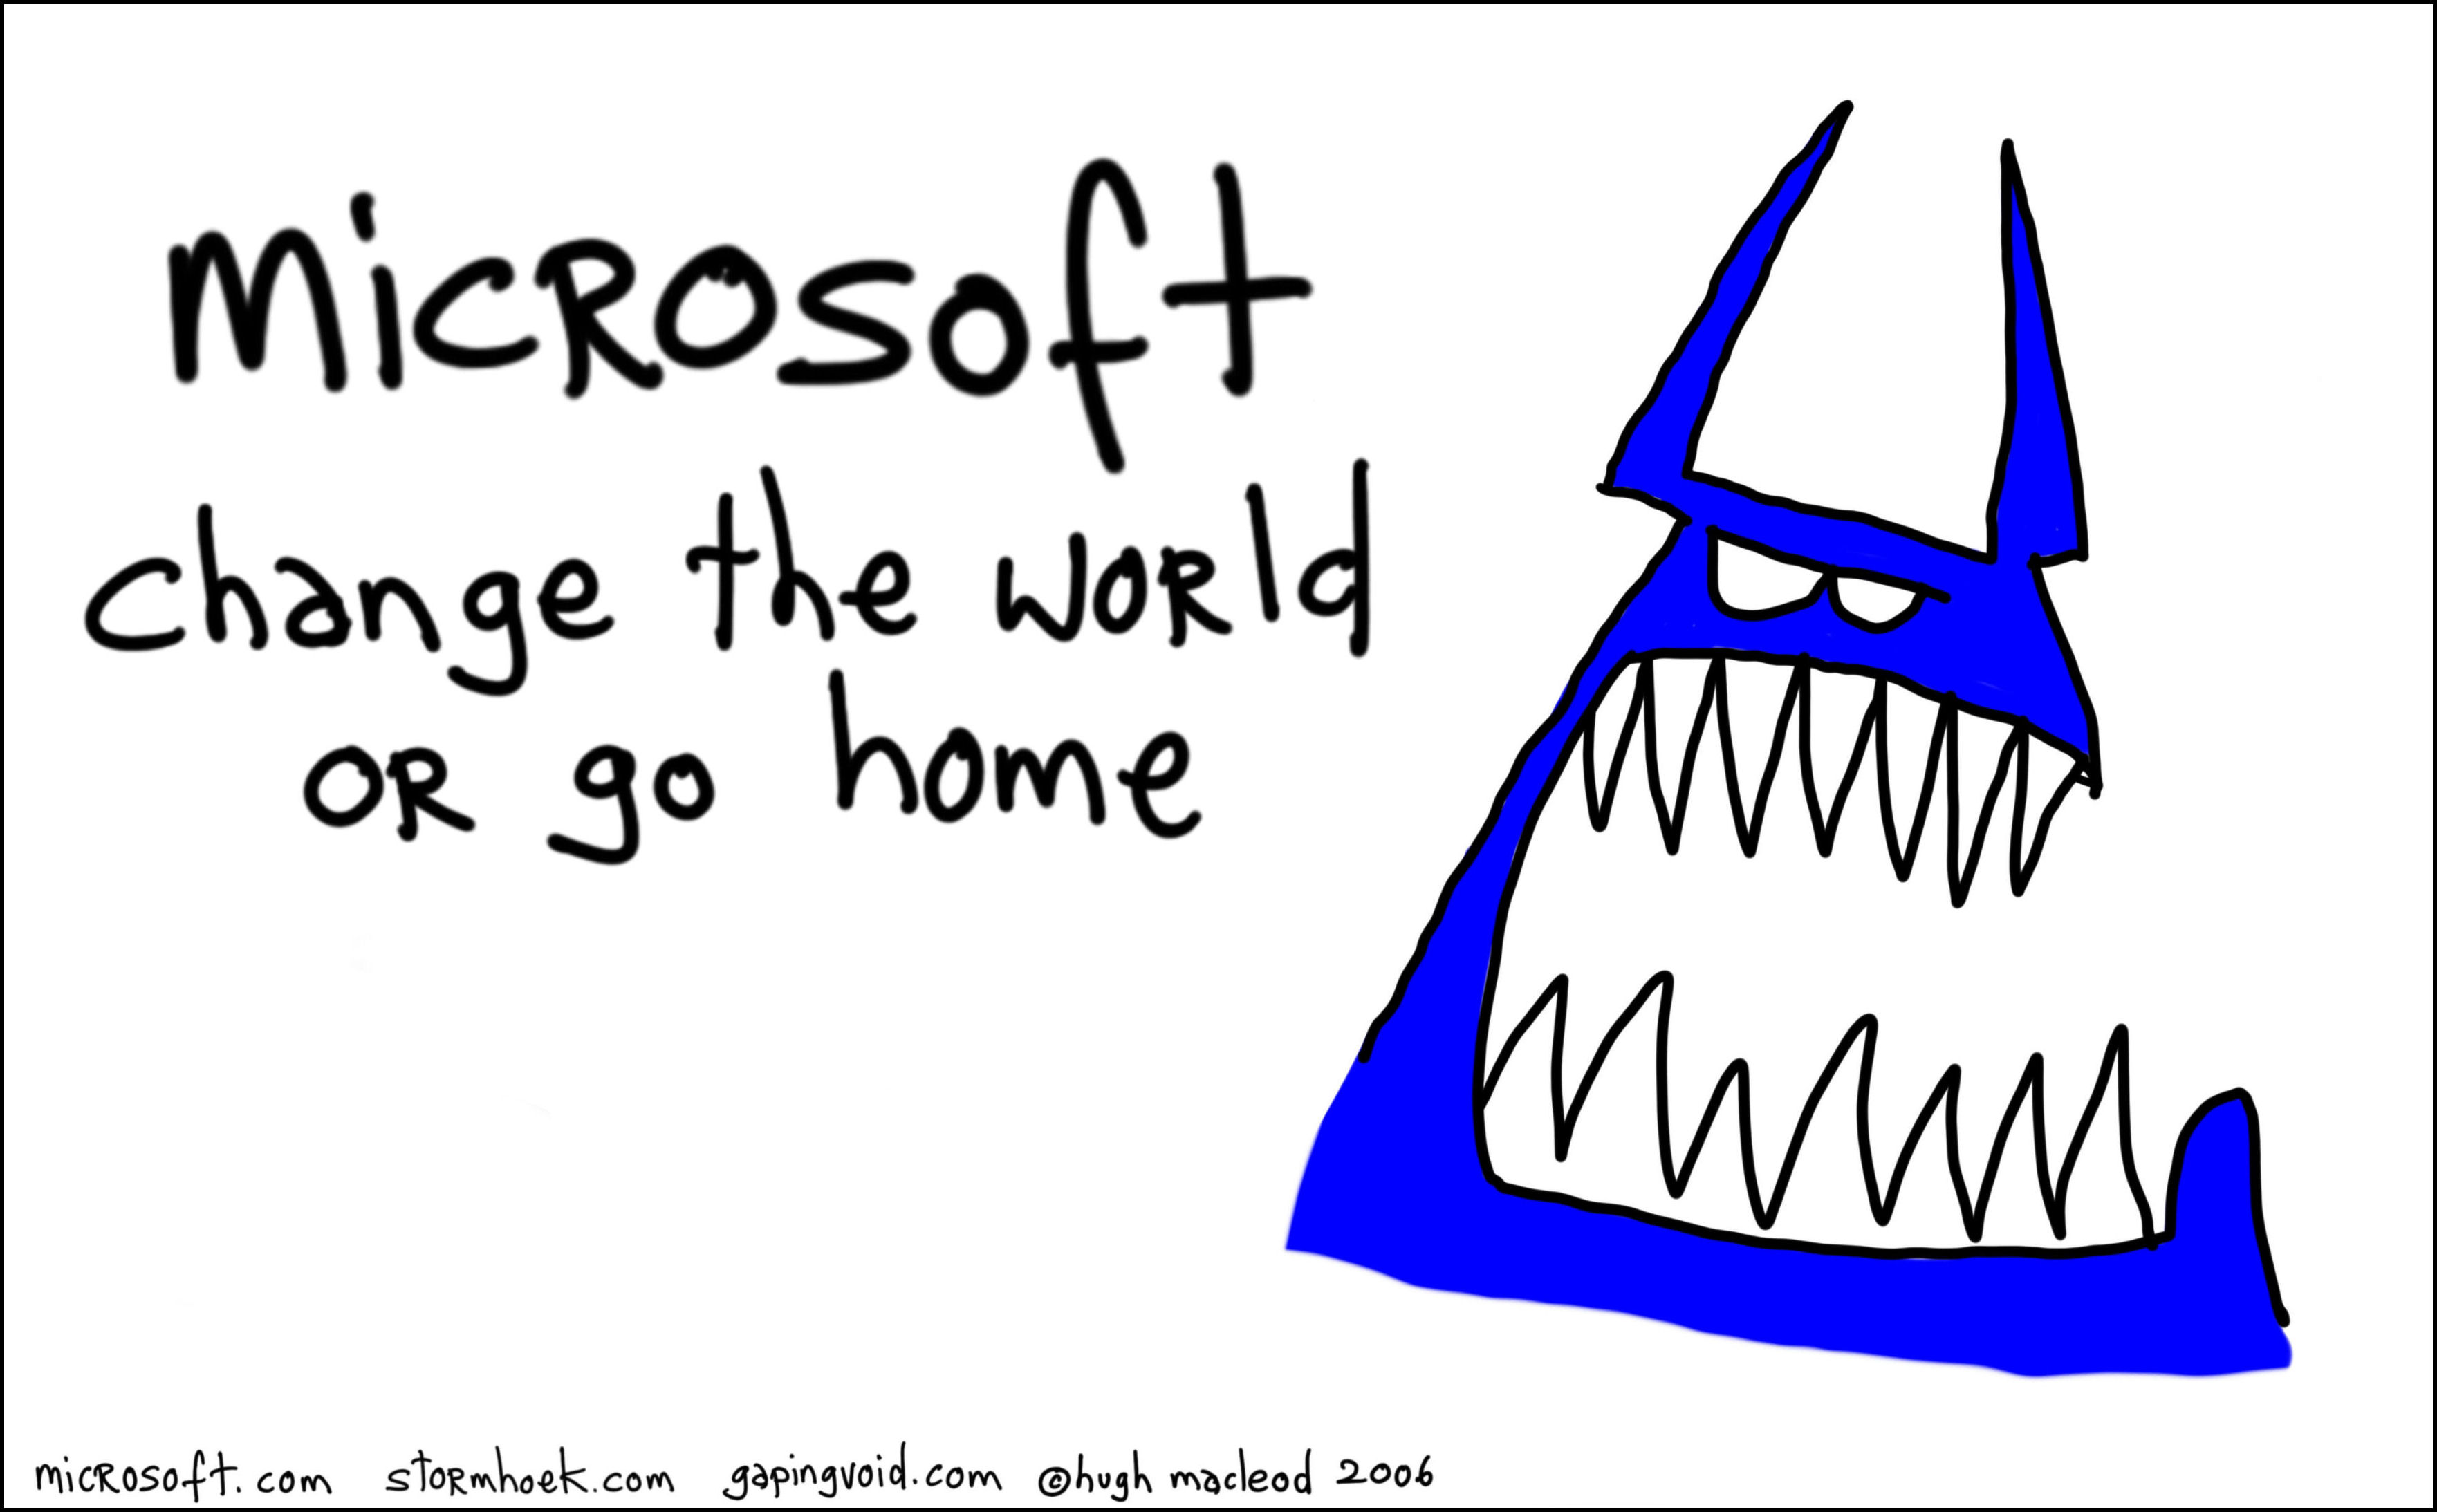 Part of the blue monster series for Microsoft helping the company redefine its image of itself